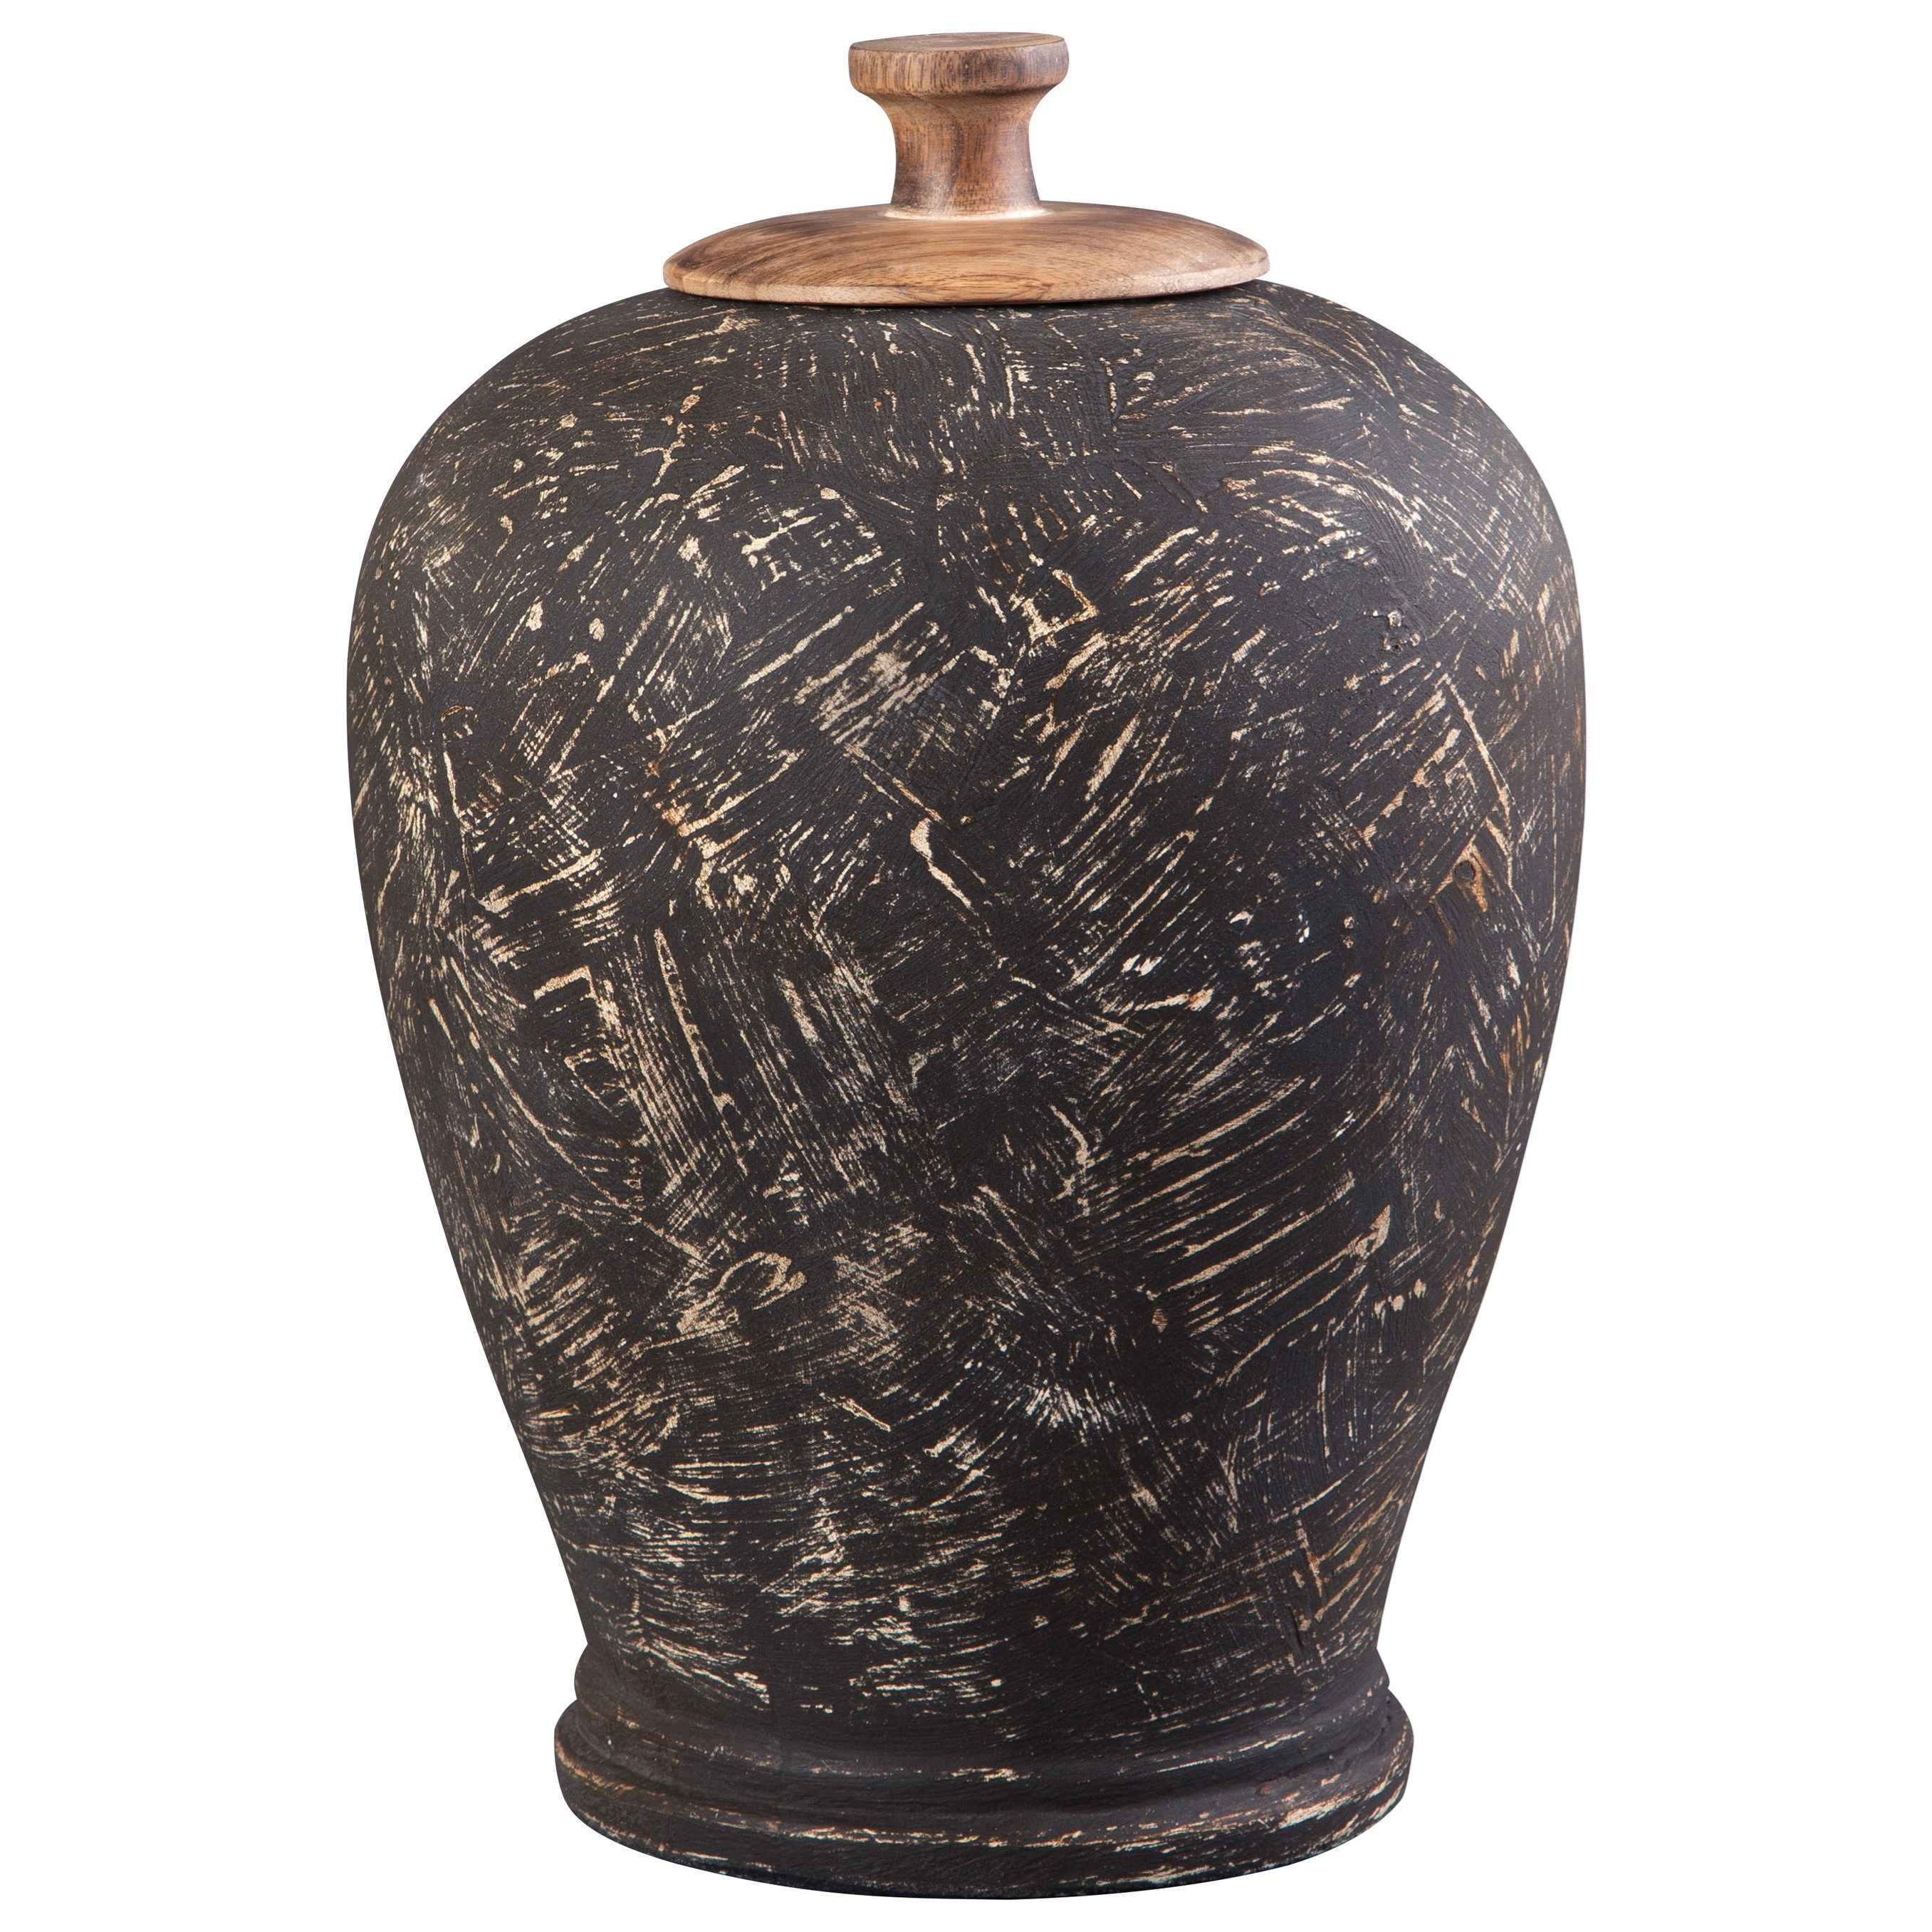 Accents Barric Antique Black Jar at Van Hill Furniture